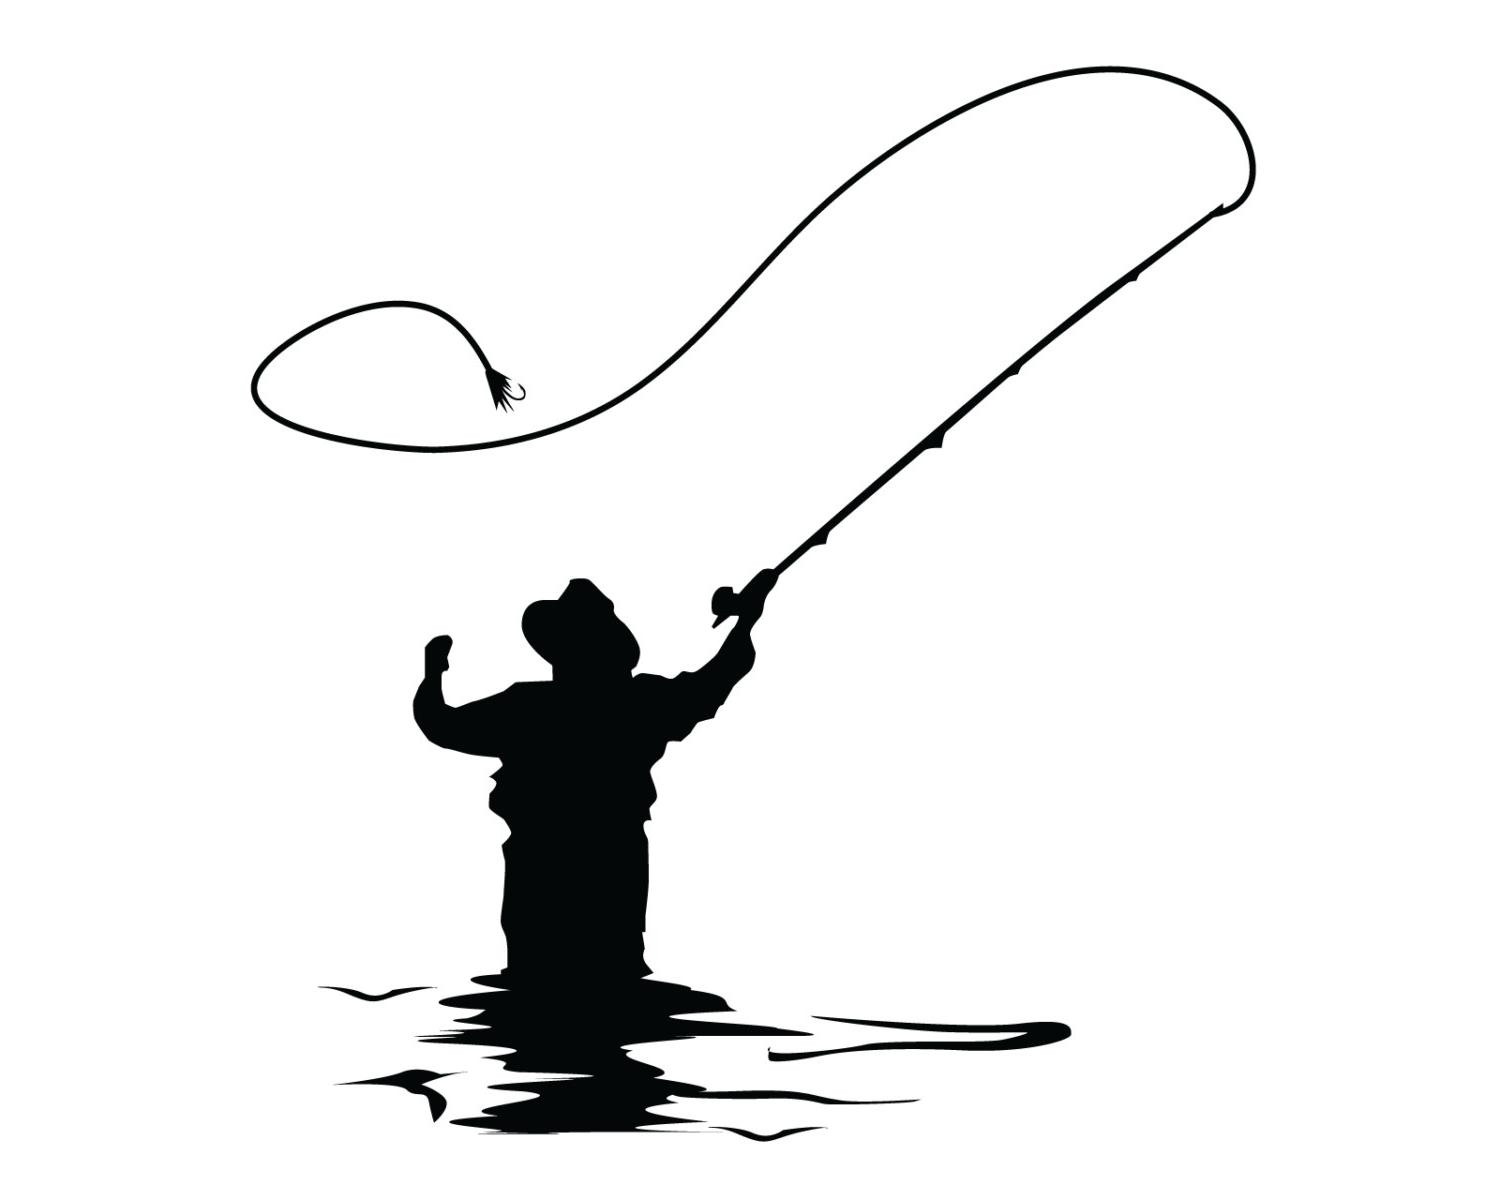 fly fishing silhouette image at getdrawings com free for personal rh getdrawings com fishing clip art free download fishing clipart free